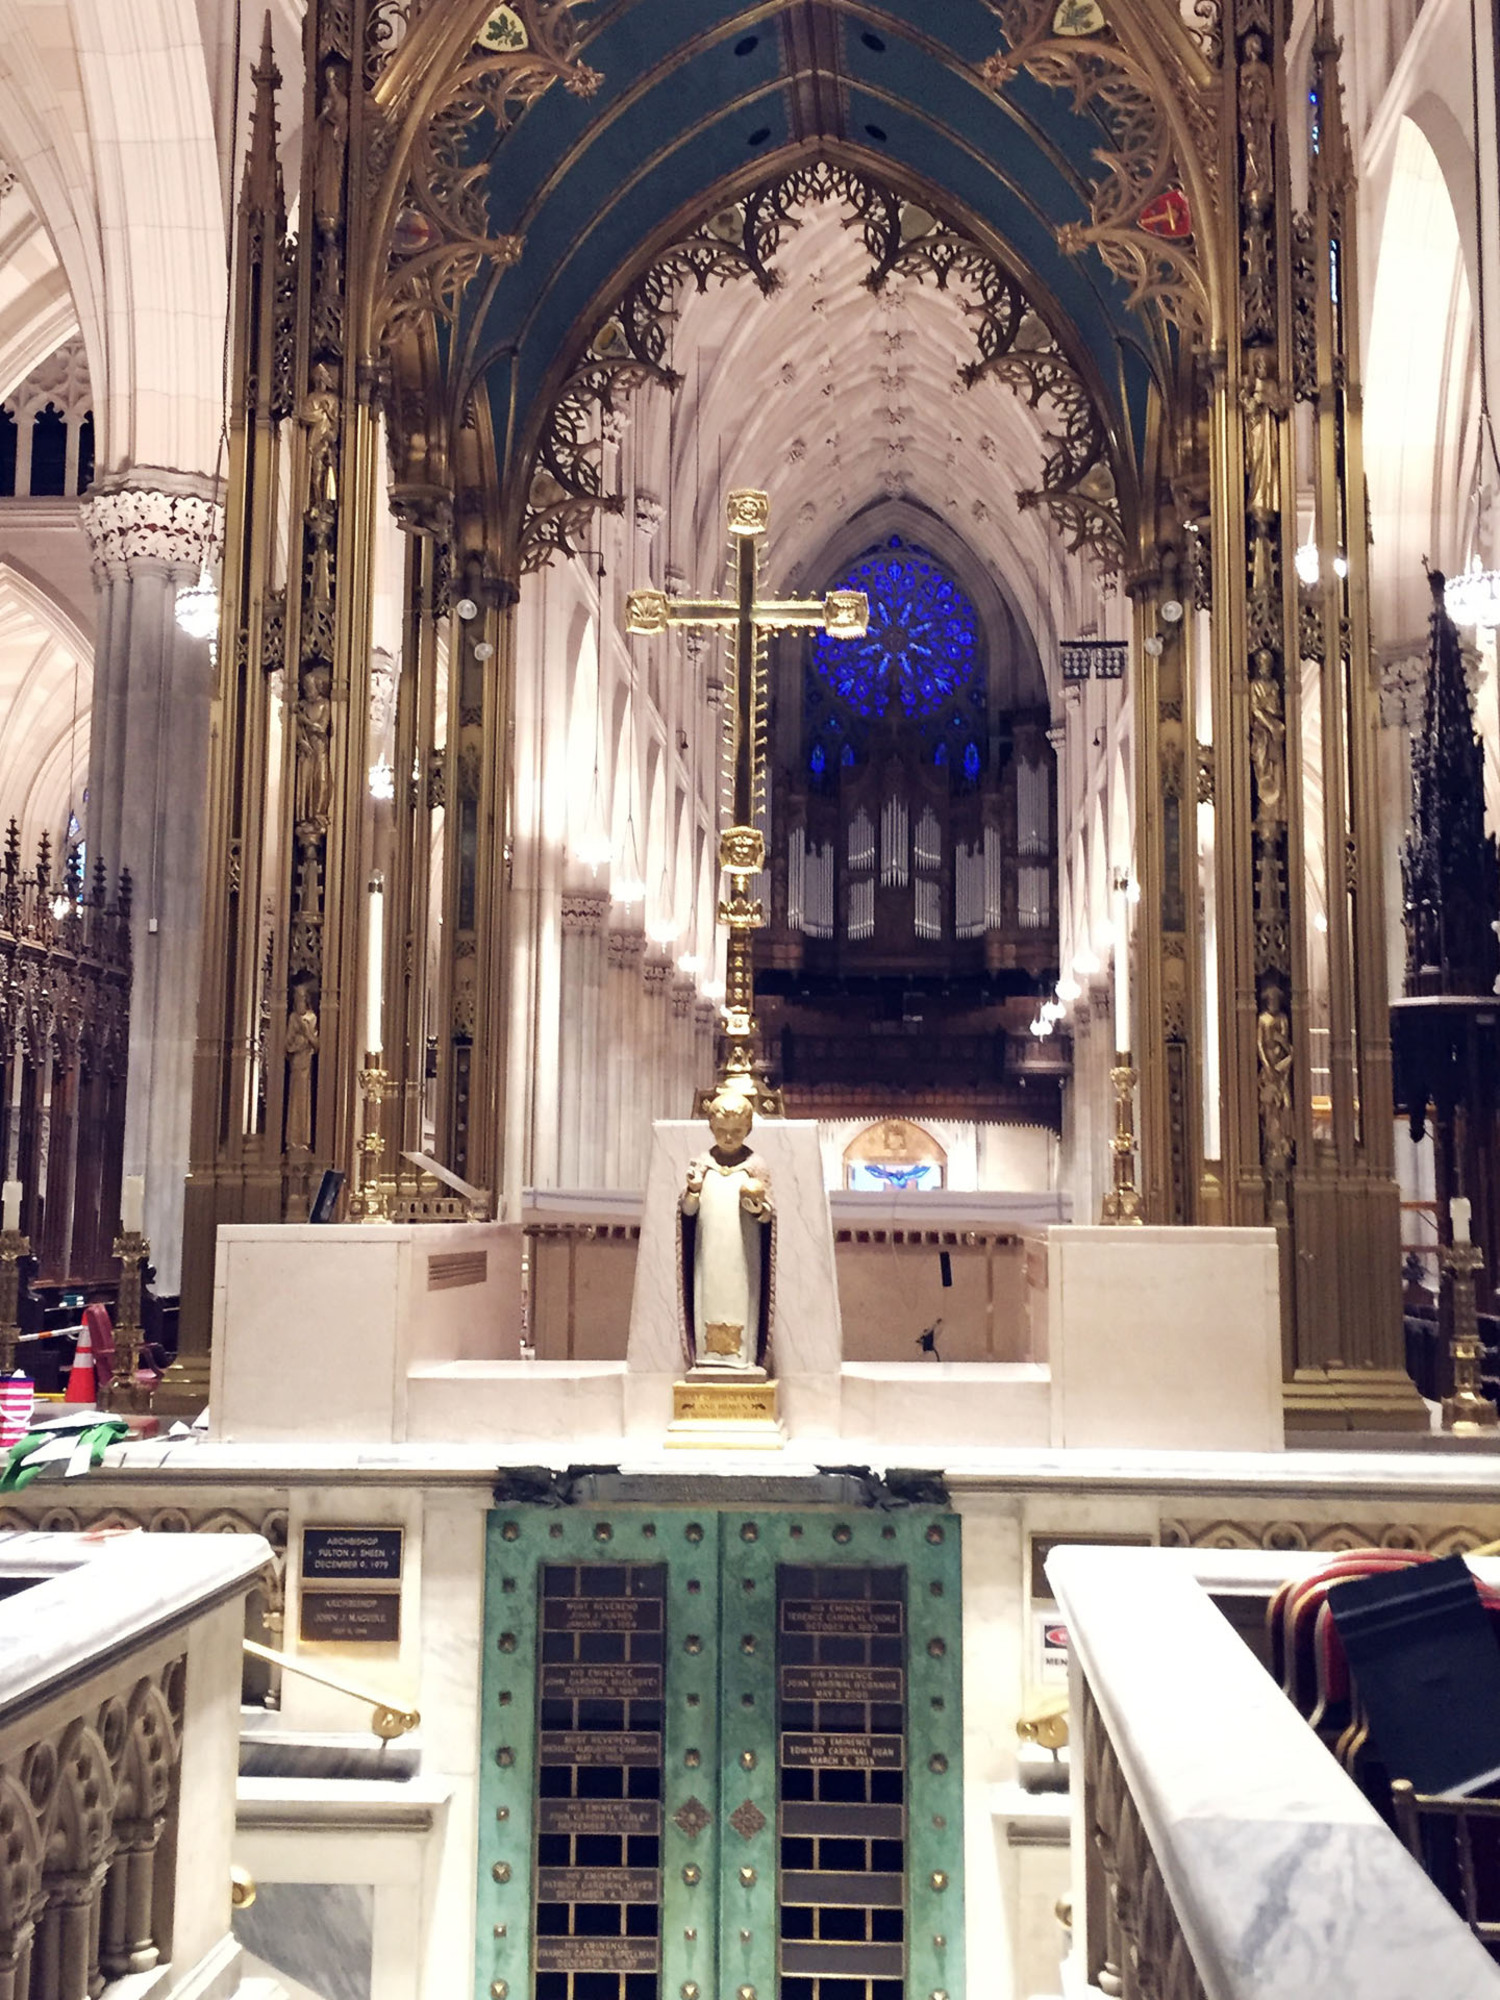 St. Patrick's Cathedral Restored Gold Ornamentation